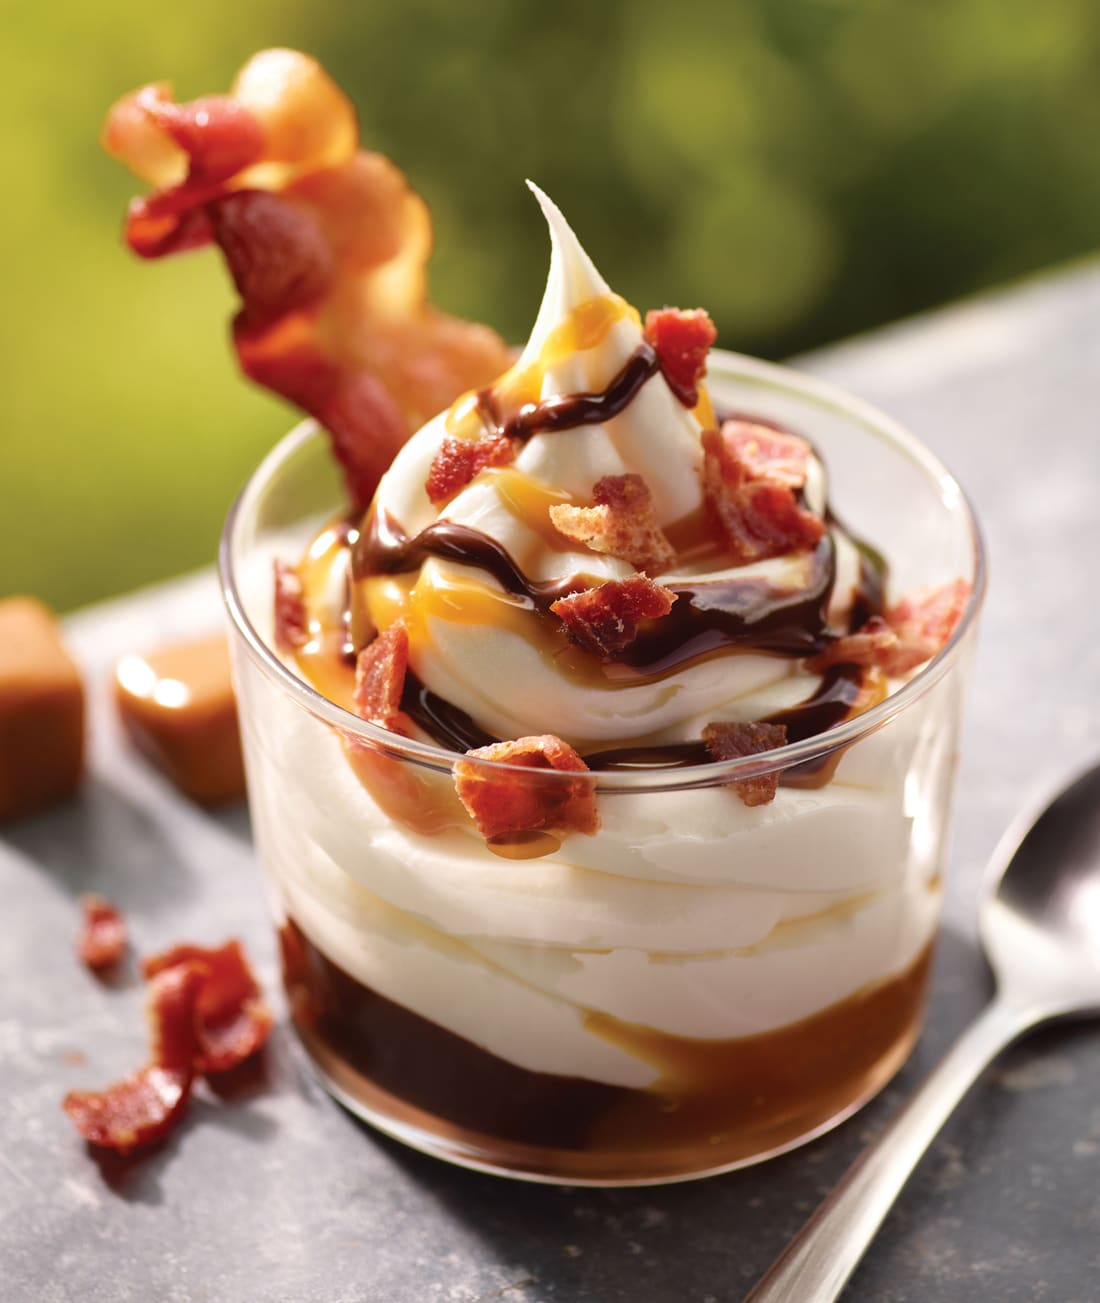 Burger King's Bacon Ice Cream Sundae Is Every Geek's Dream